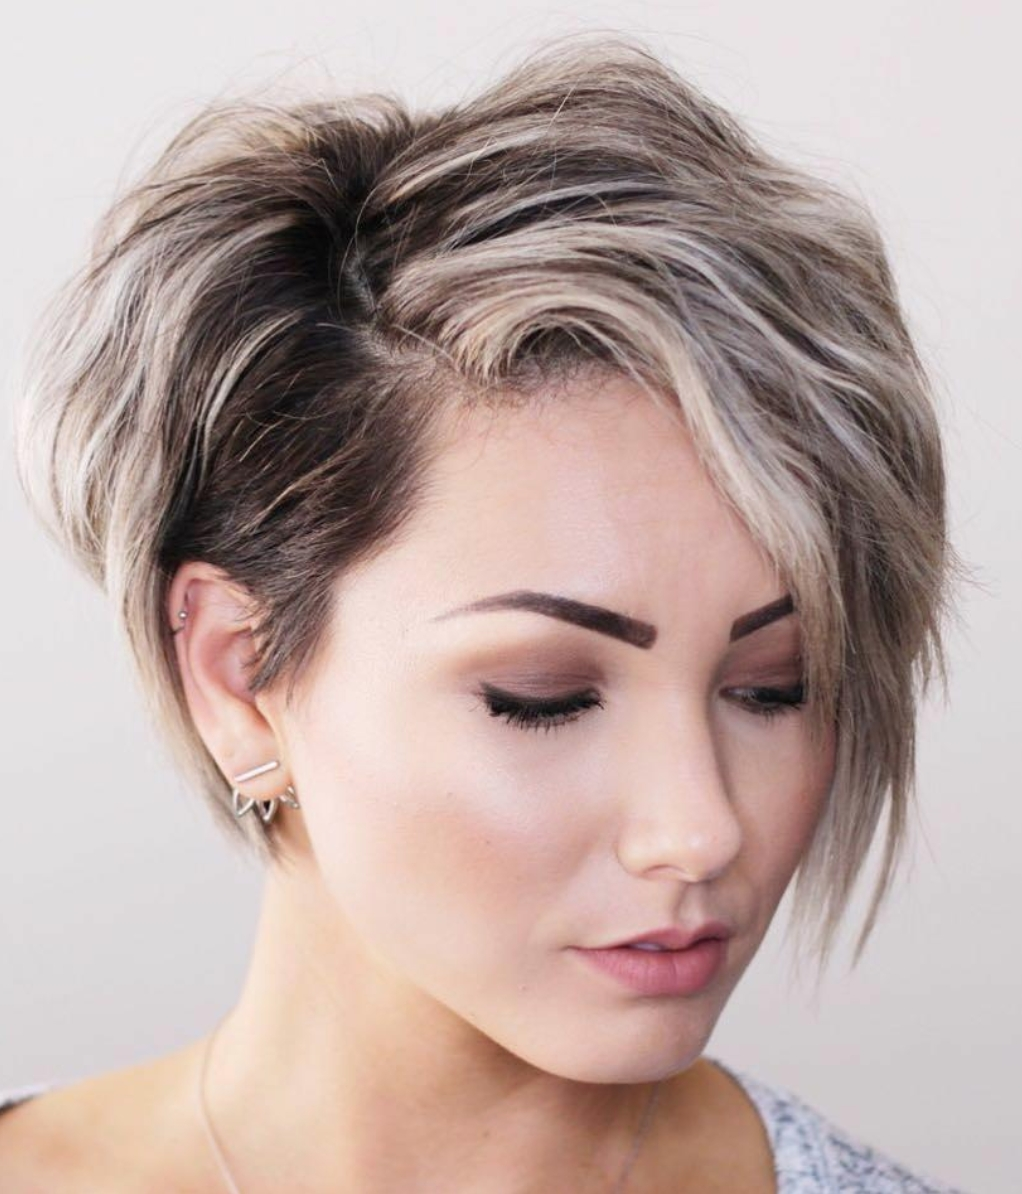 Women's Hairstyles (View 20 of 20)